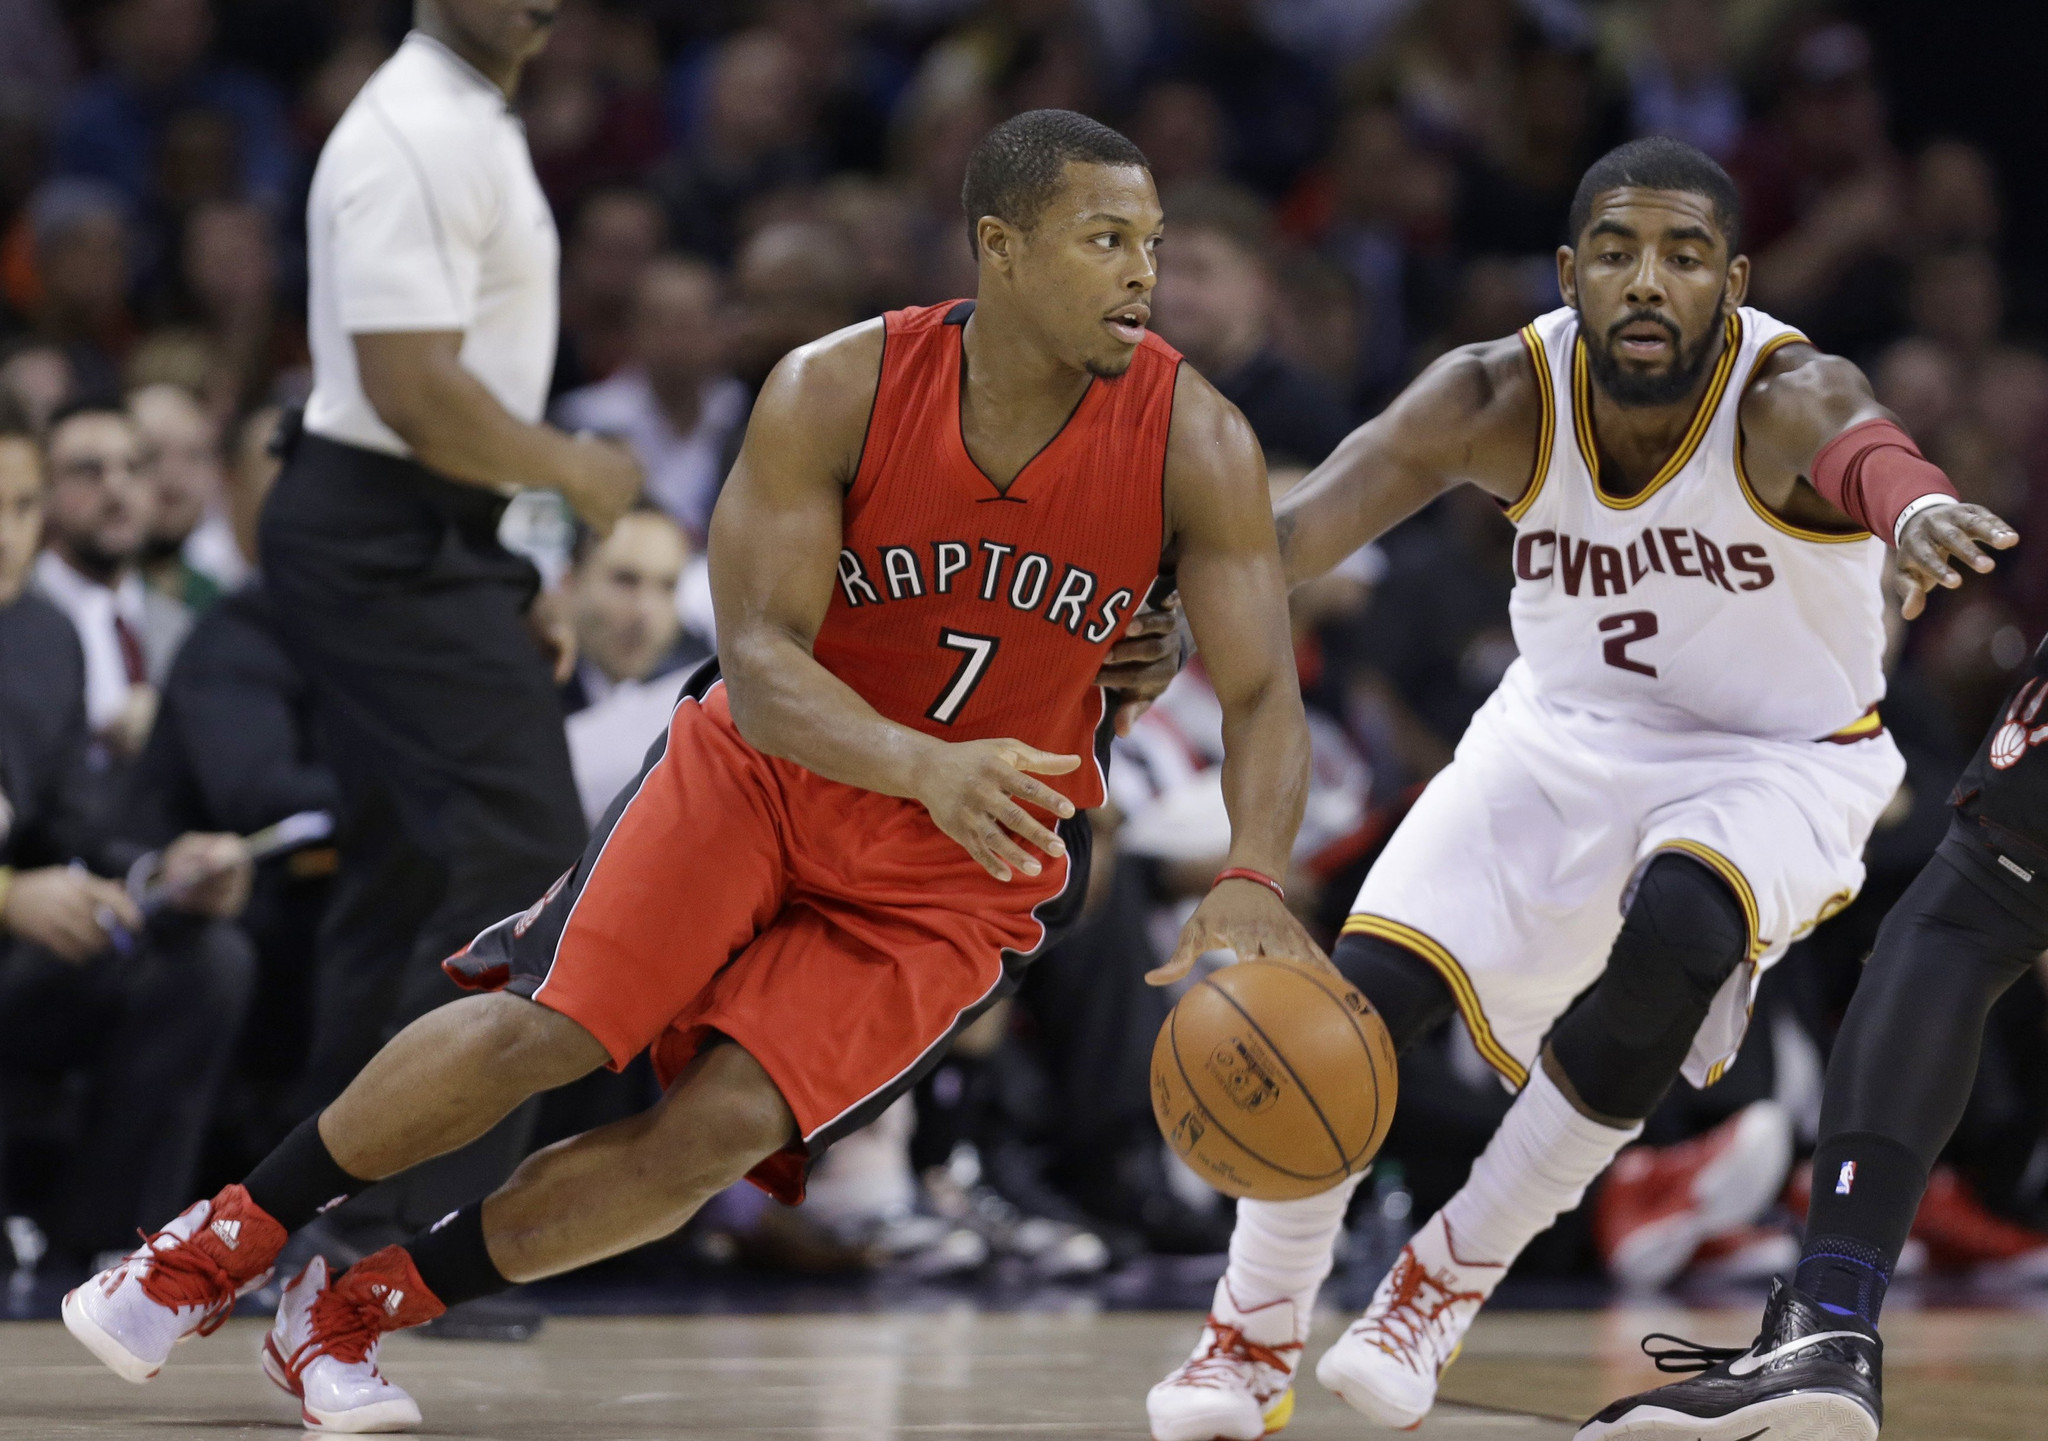 Raptors Vs Lakers Pinterest: Preview: Lakers Vs. Toronto Raptors